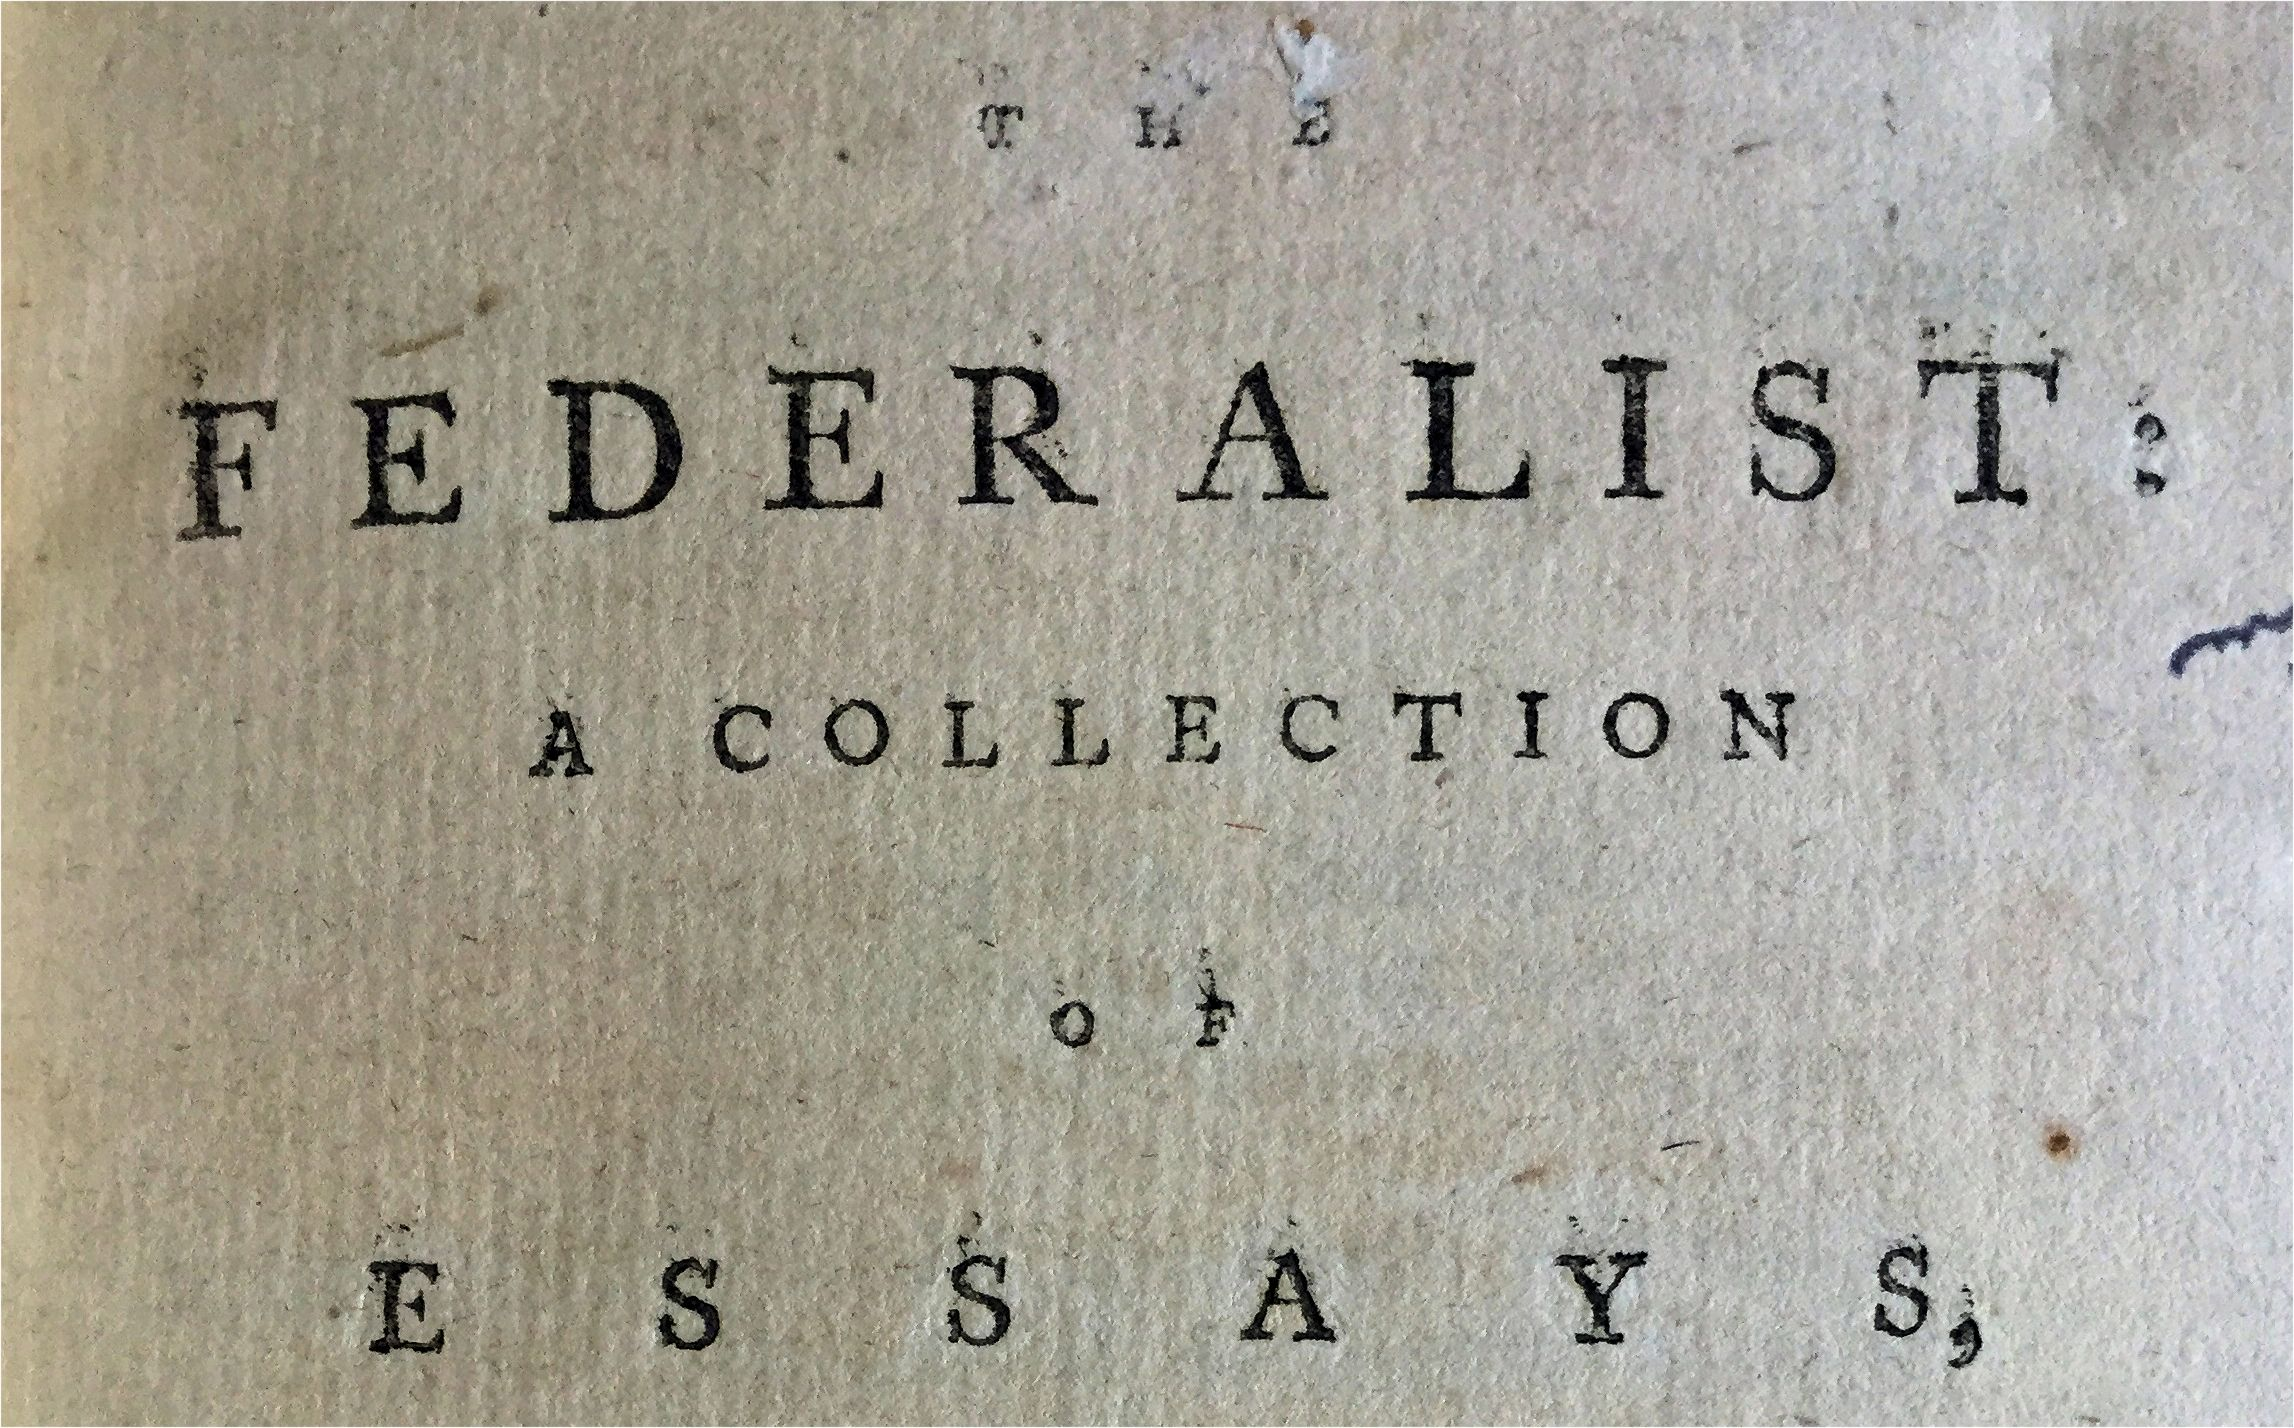 Federialist papers essay